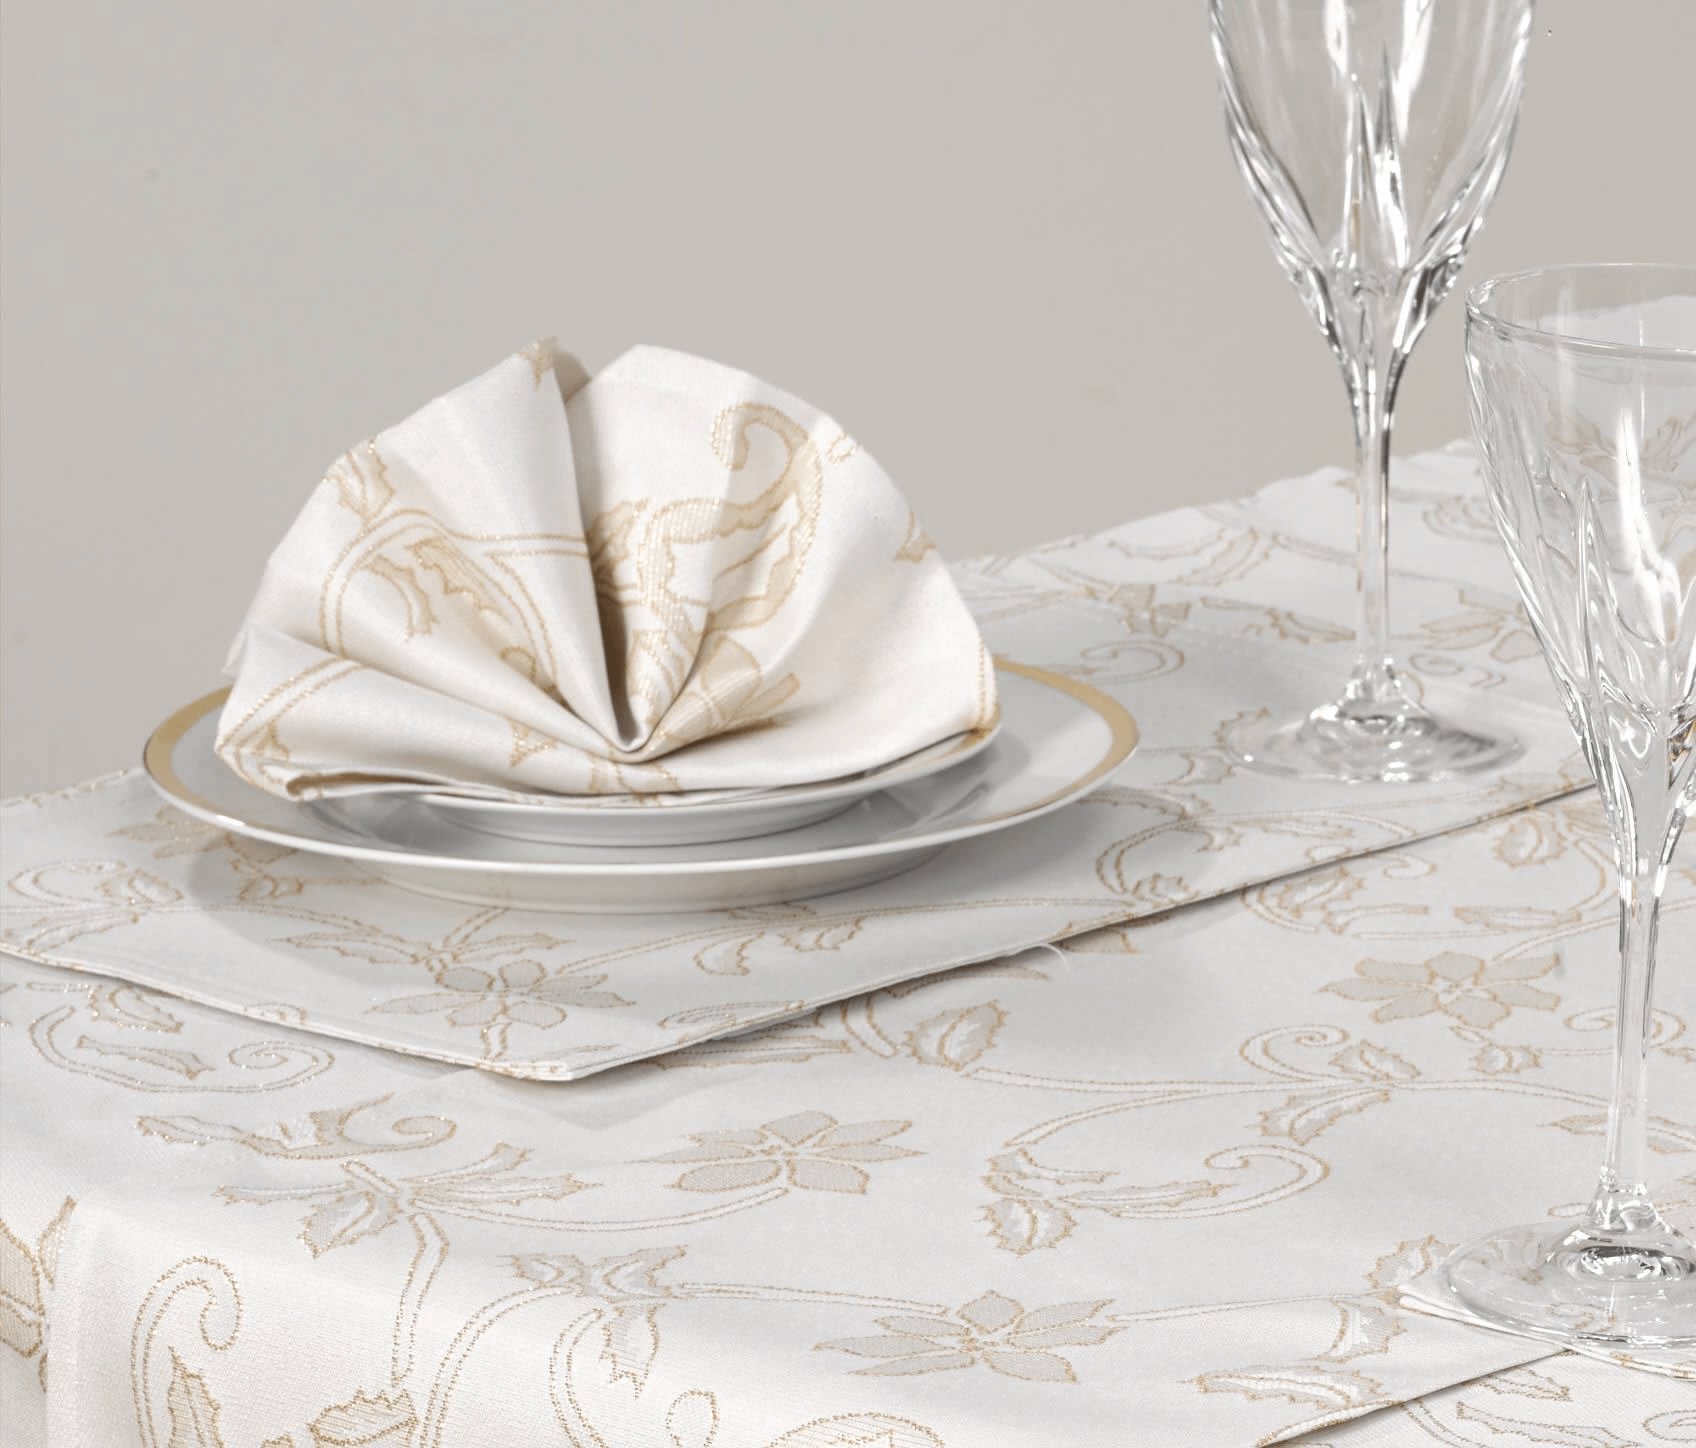 Piece of Christmas cloth for dining table decoration